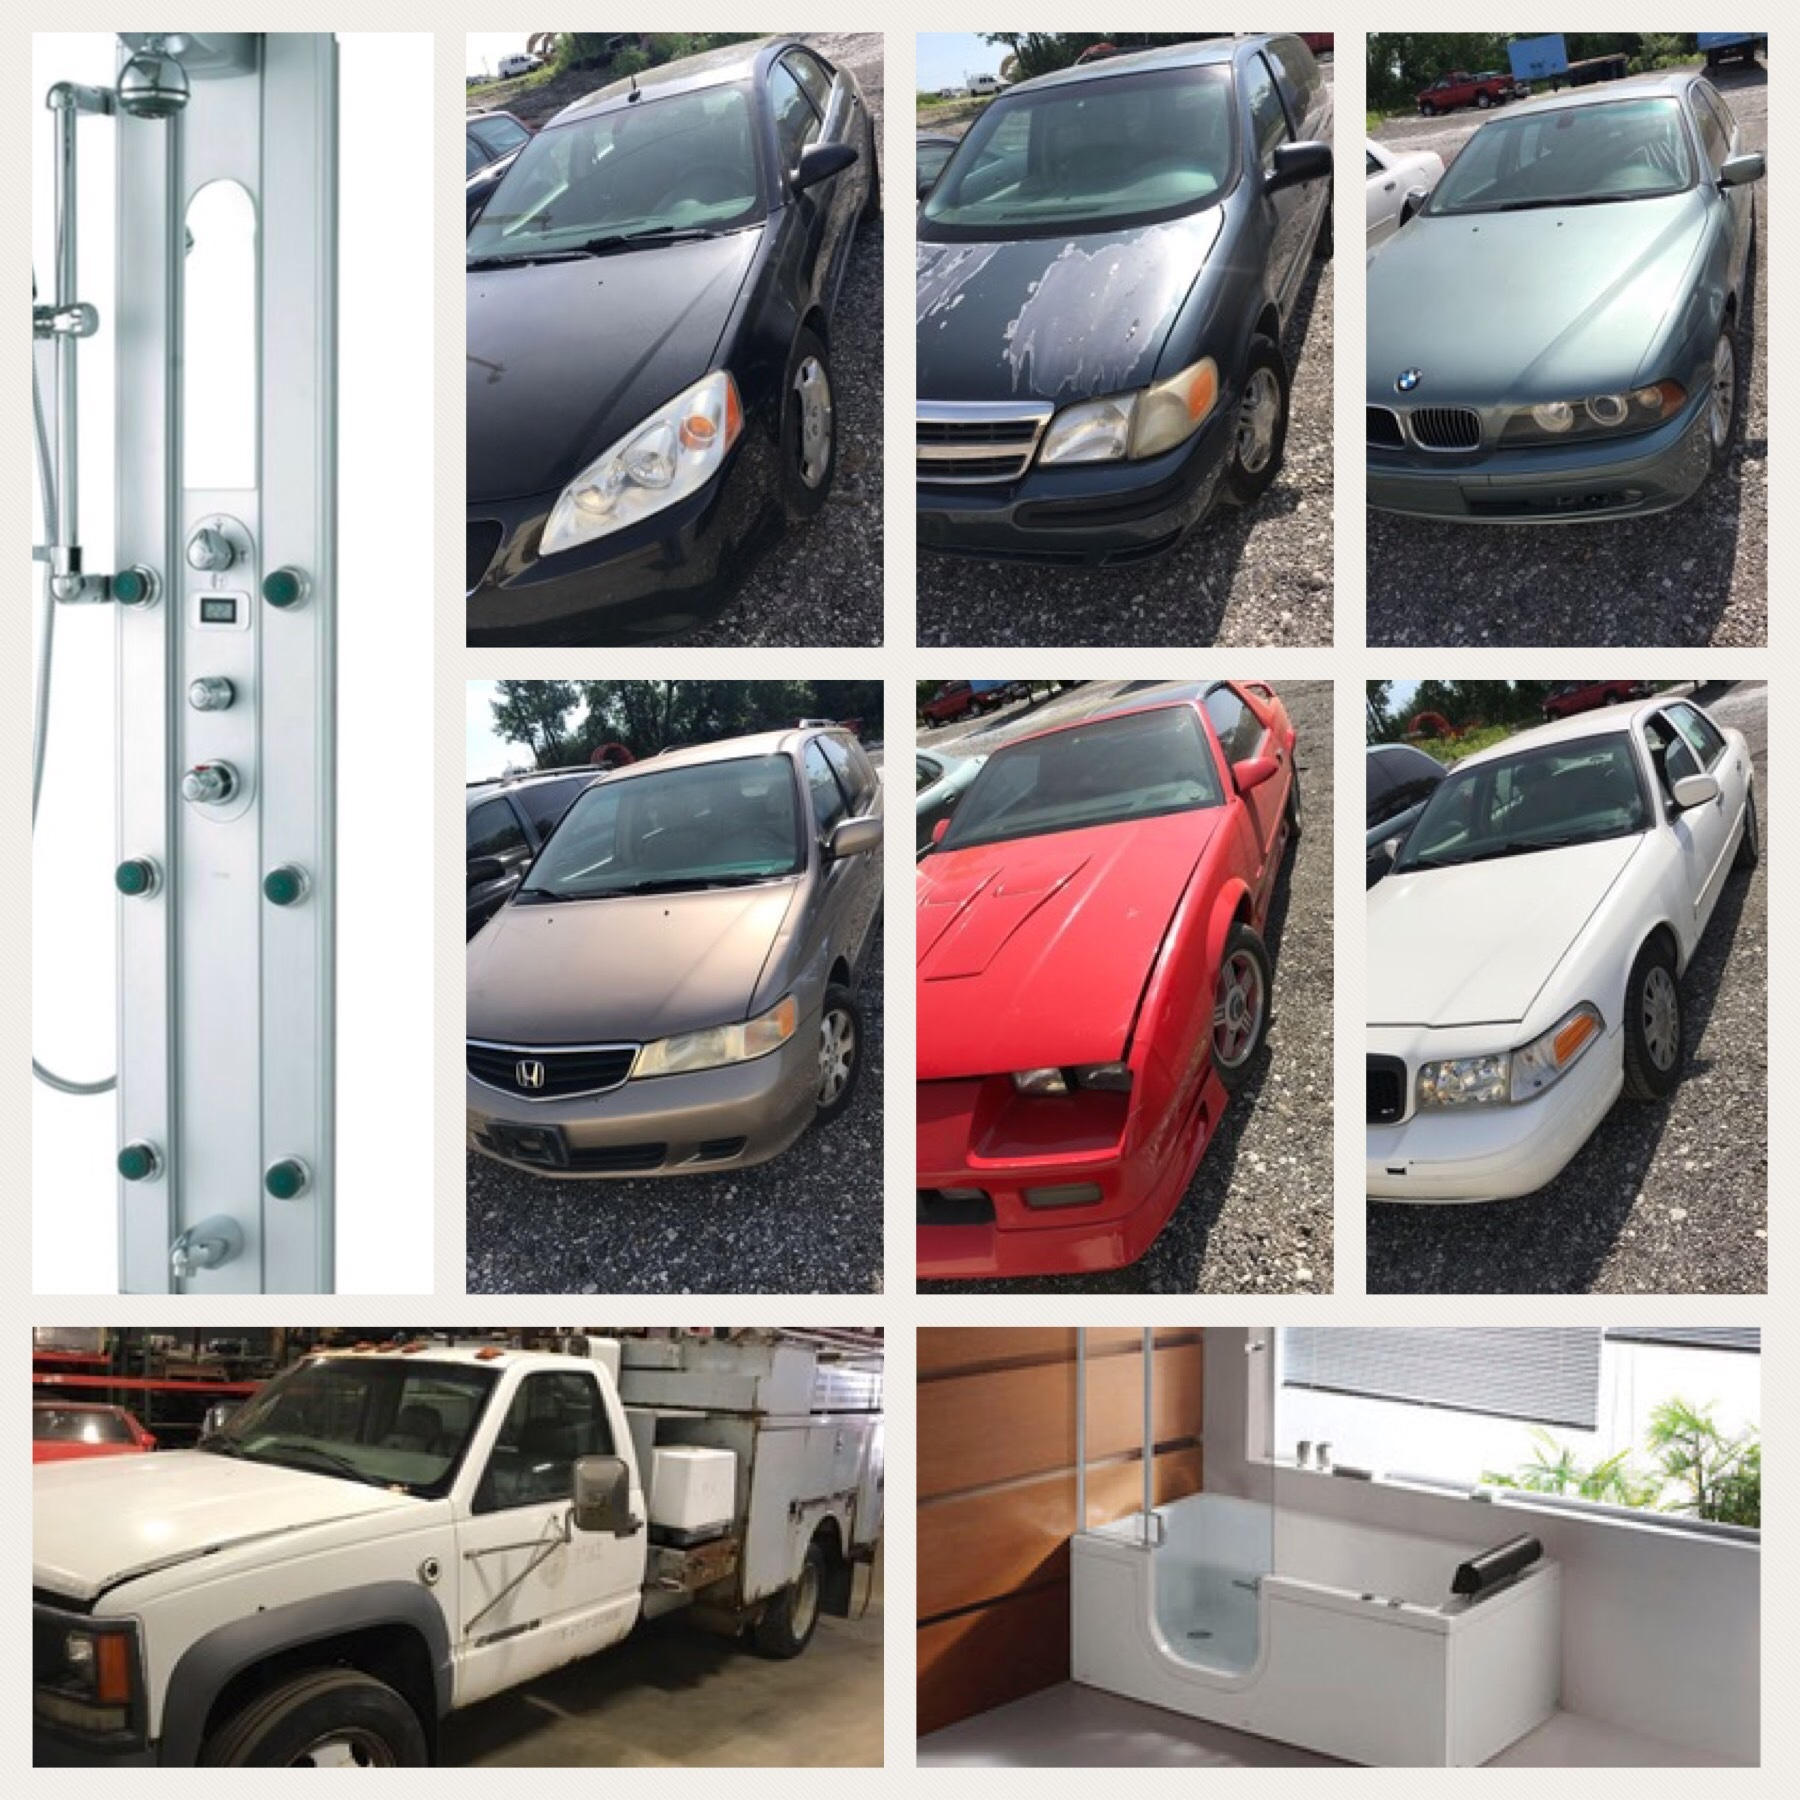 Online-Only Autos, New Showers/Tubs, Tools & | Buddy Barton Auctioneer